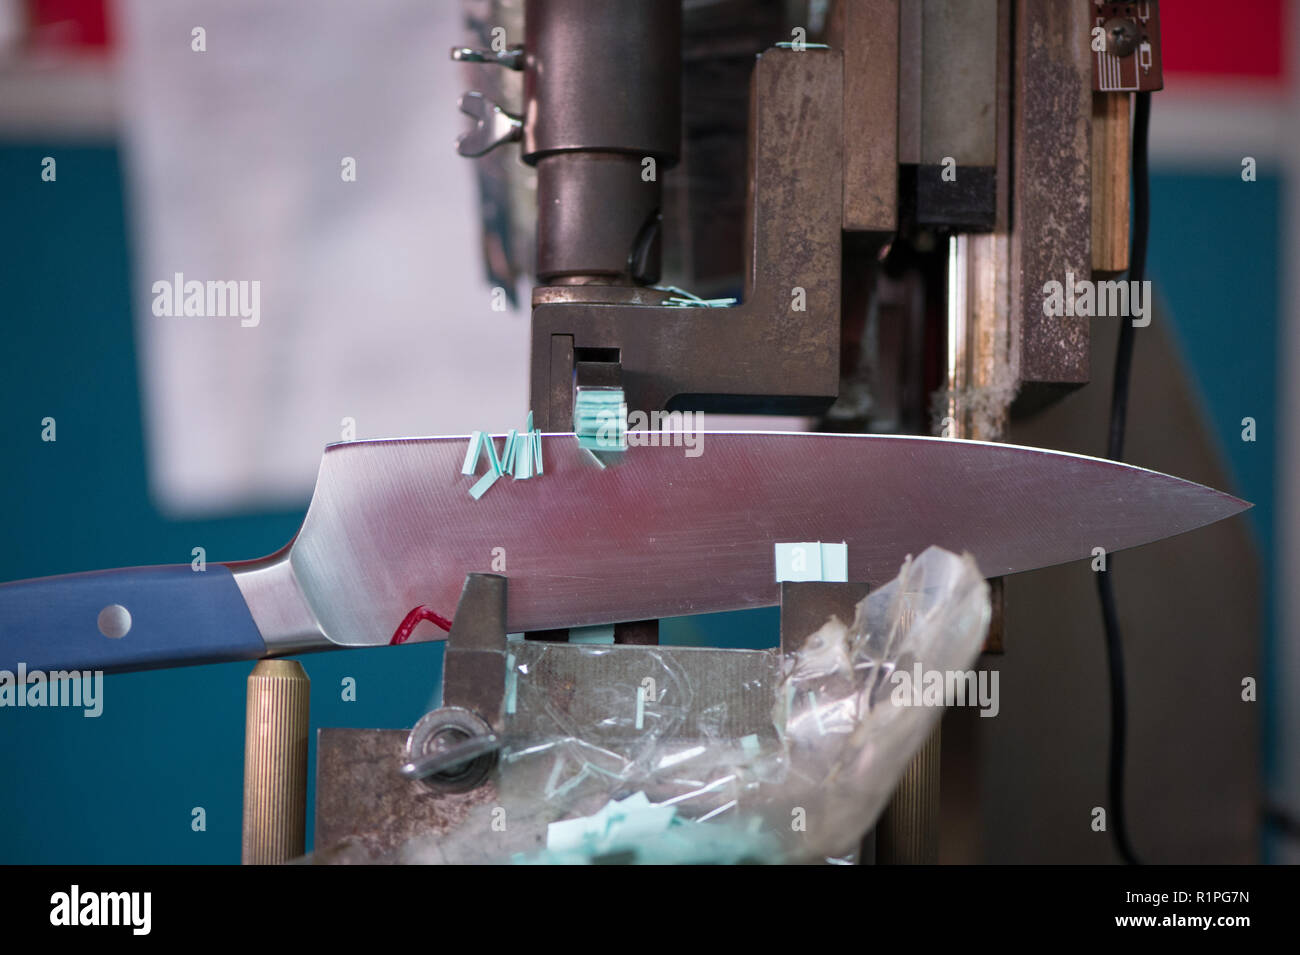 Knife blade making test cut with paper on machinery, manufacturing - Stock Image